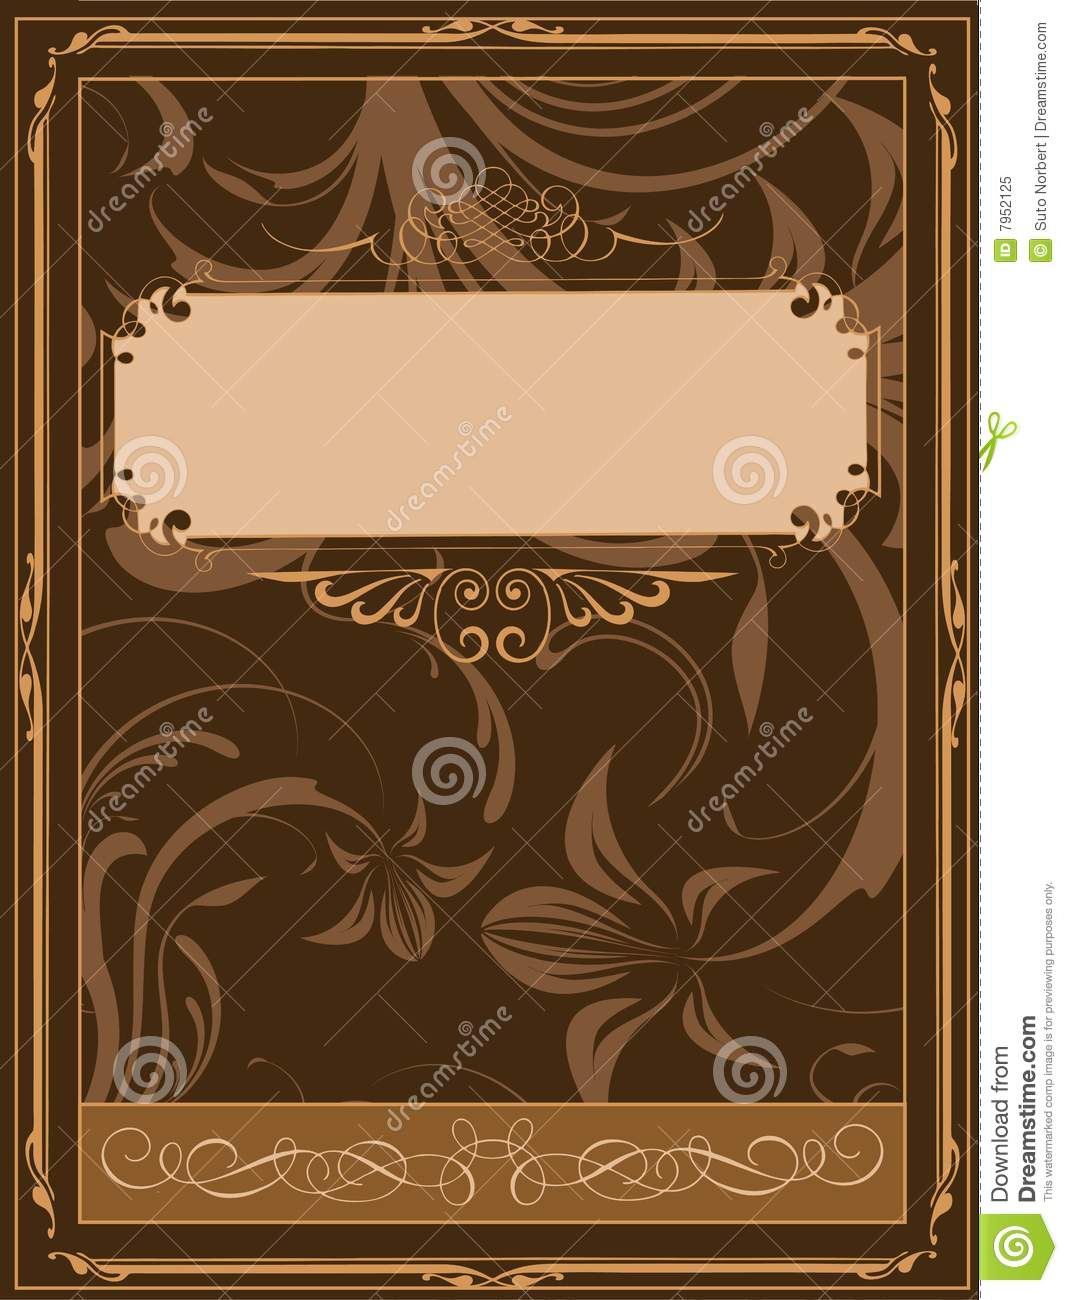 Old Fashioned Book Cover Clipart ~ Old book cover royalty free stock photo image